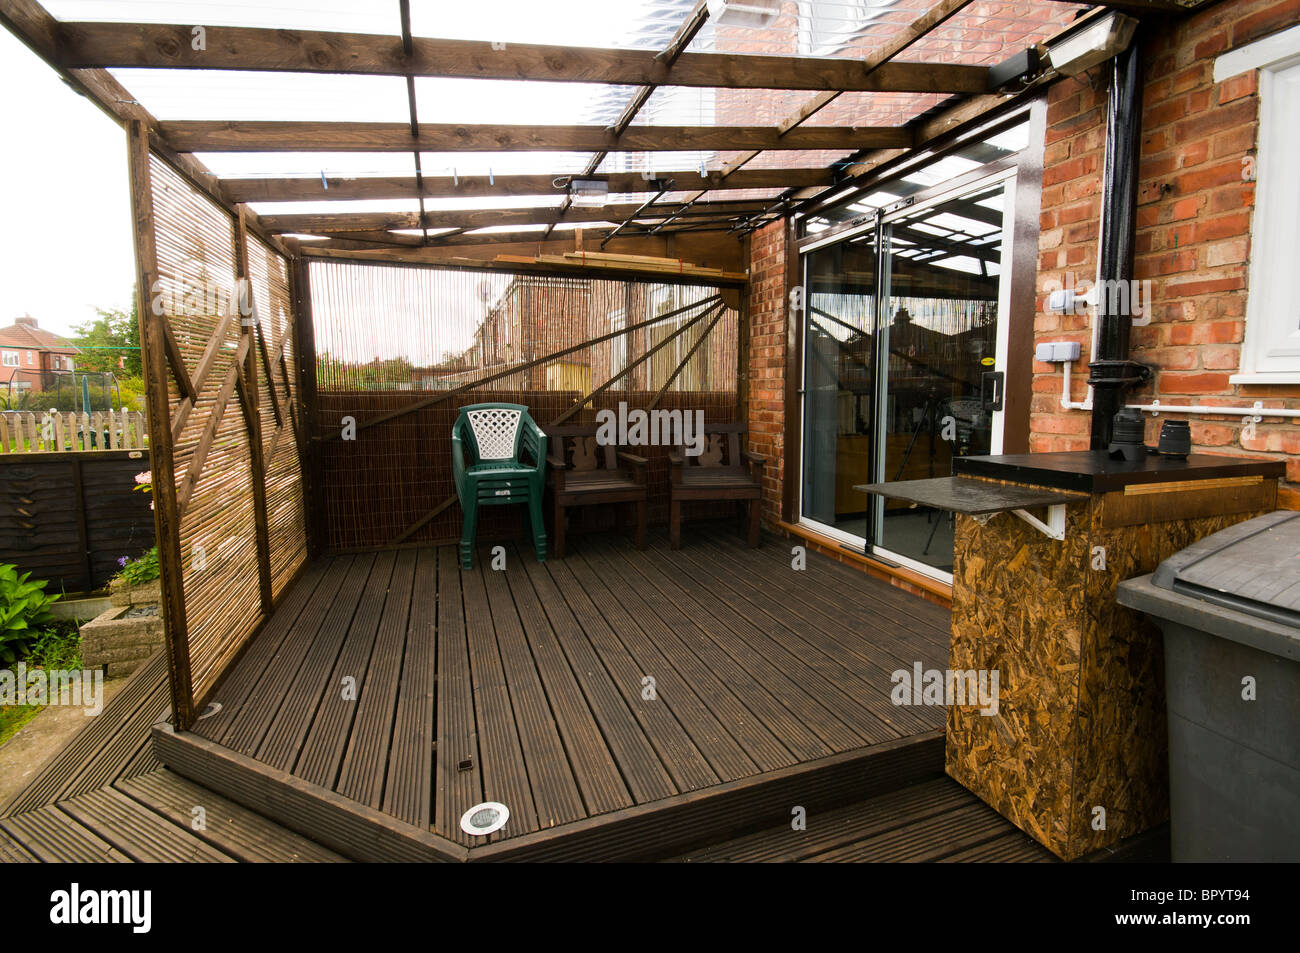 Great Home Built Patio Decking With Corrugated Plastic Roofing And Movable  Screening Panels In A Domestic Setting. Manchester, UK.